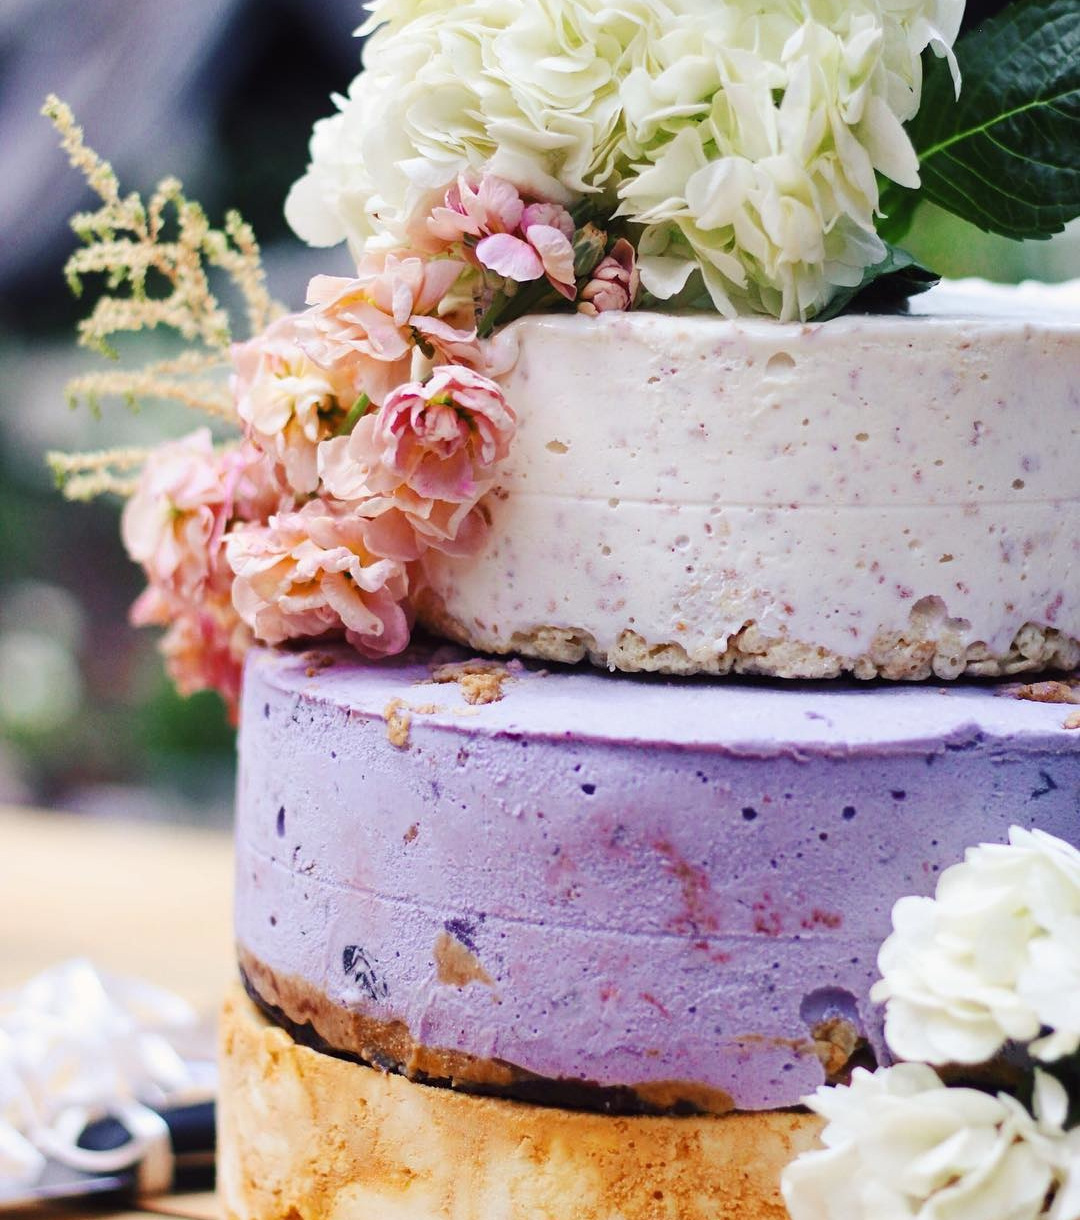 gateau de mariage on remplace la piece montee par de la glace 5406f25387c9293ce15a35218c5cc5fec7ea9901 - In Summer - Brighten your wedding with the soft rays of the sun!